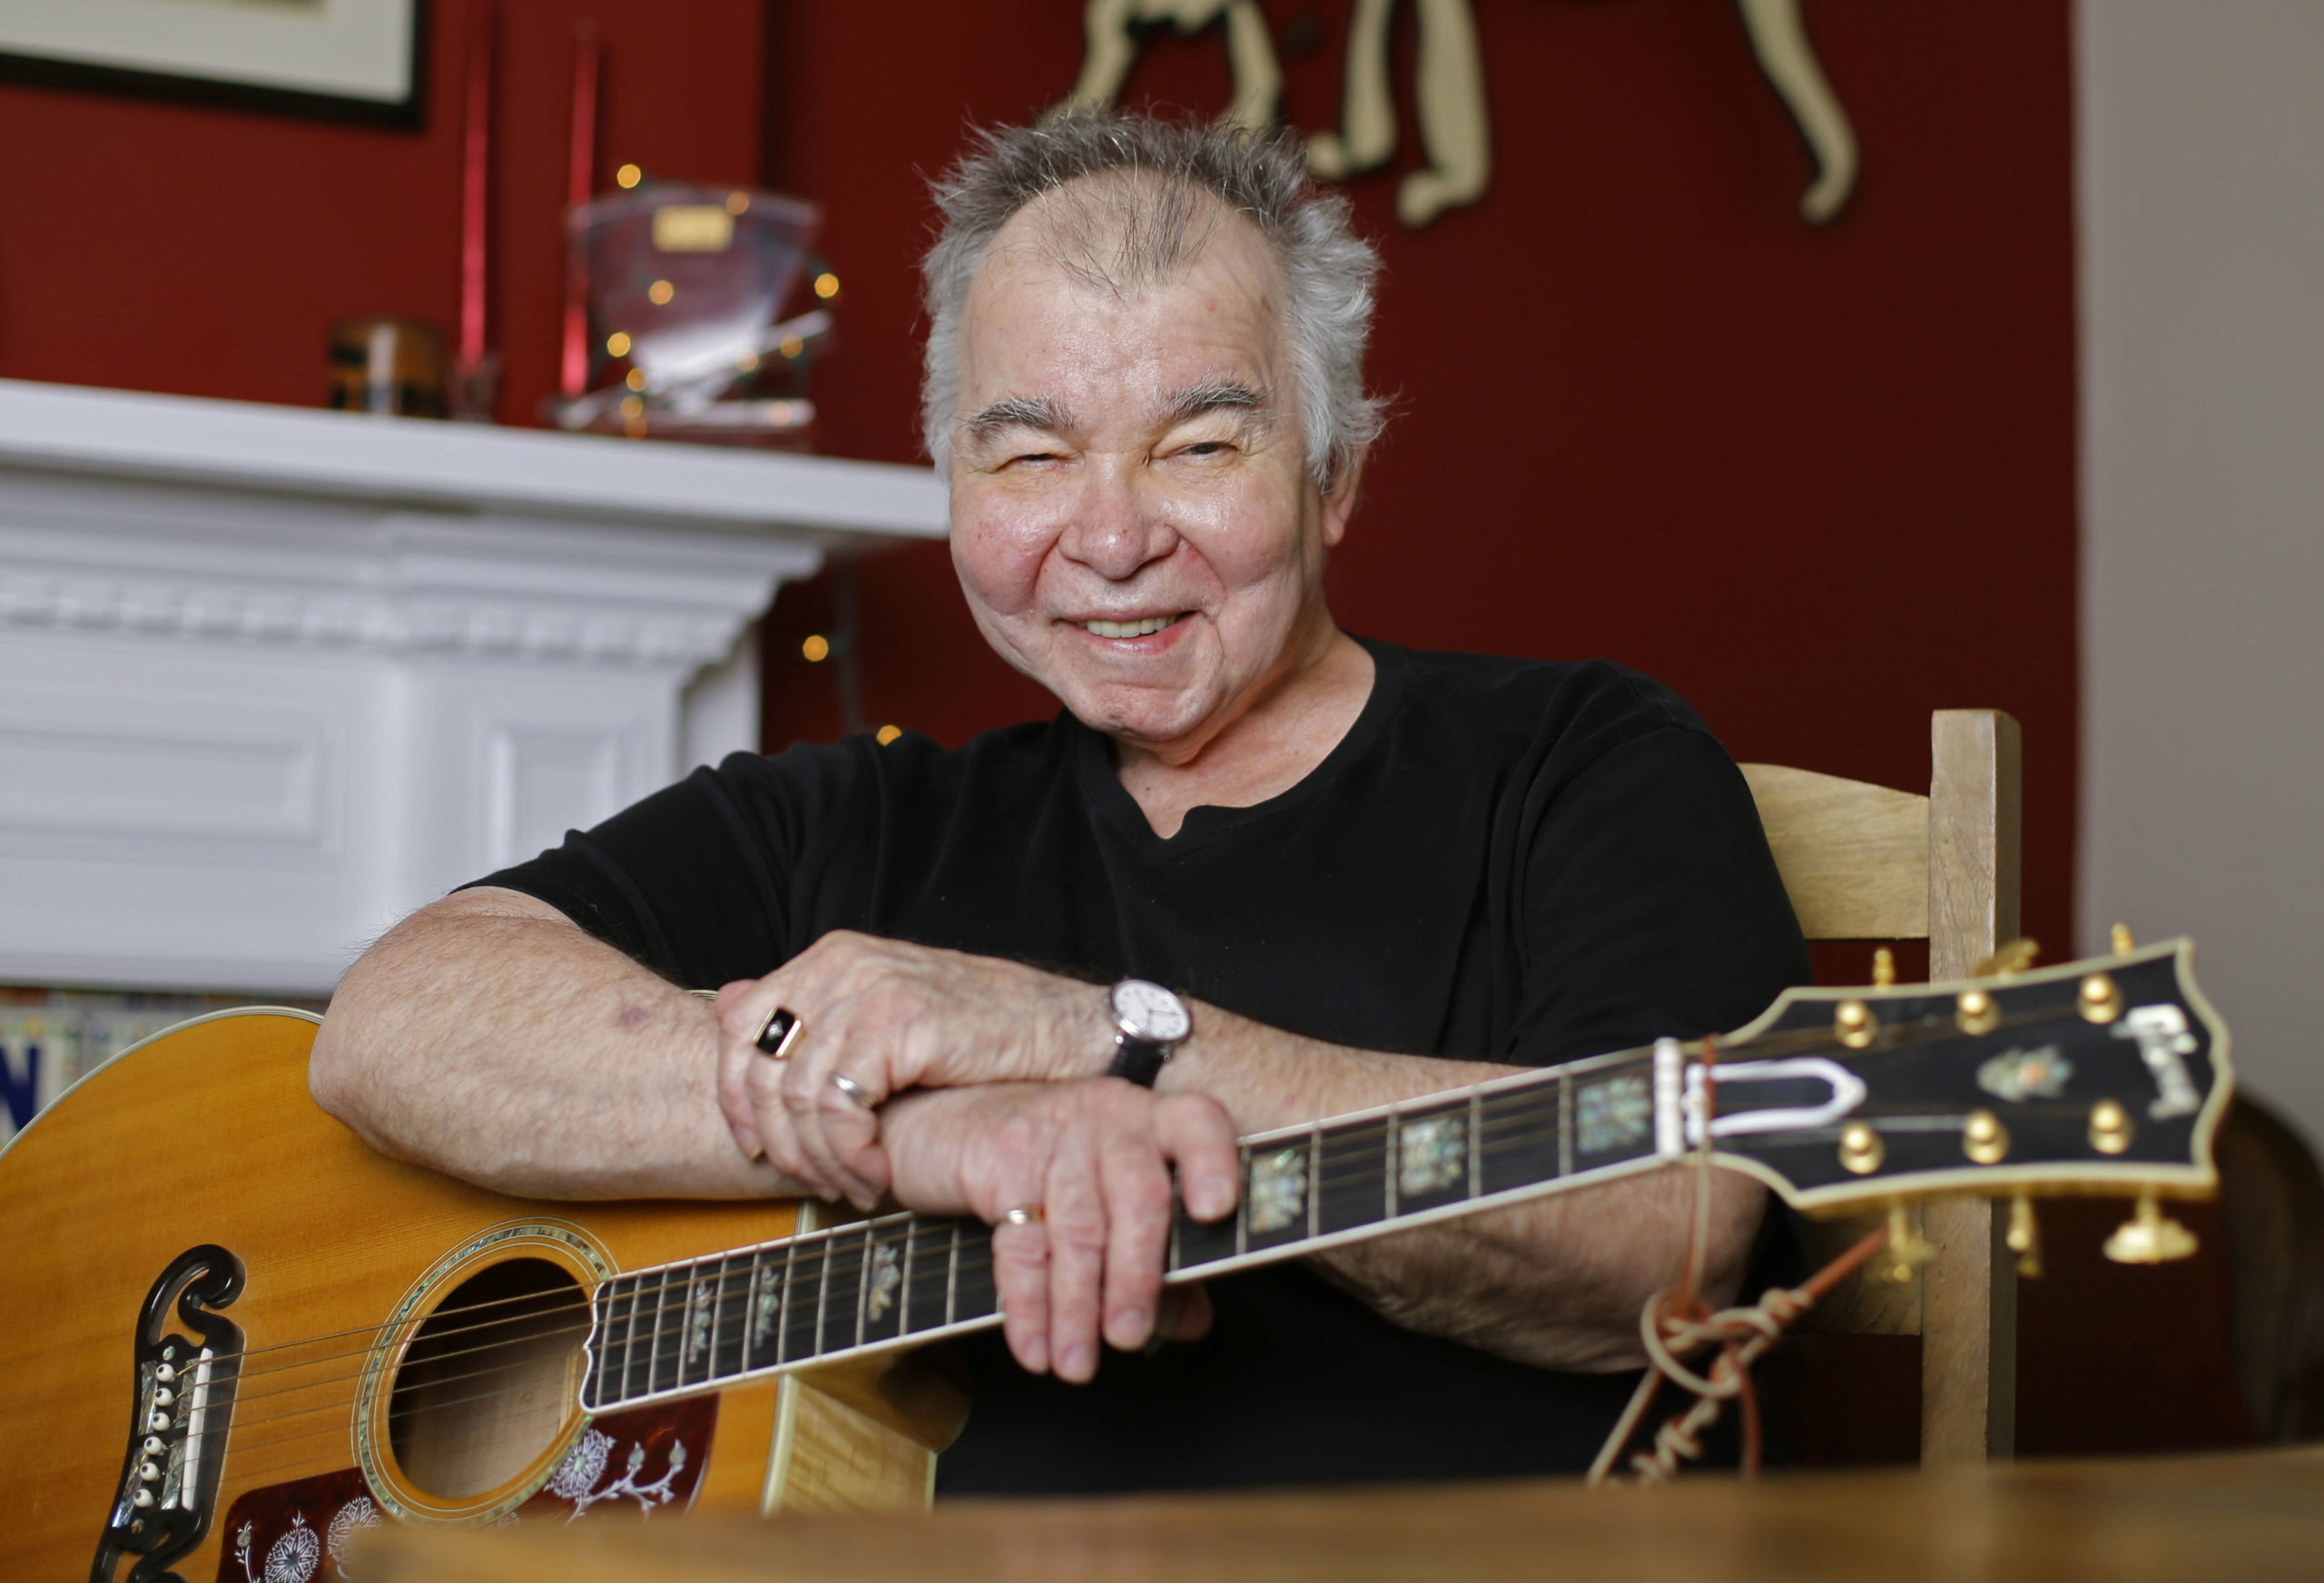 FILE - In this June 20, 2017 file photo, John Prine poses in his office in Nashville, Tenn. Prine died Tuesday, April 7, 2020 from complications of the coronavirus. He was 73. (AP Photo/Mark Humphrey, File)